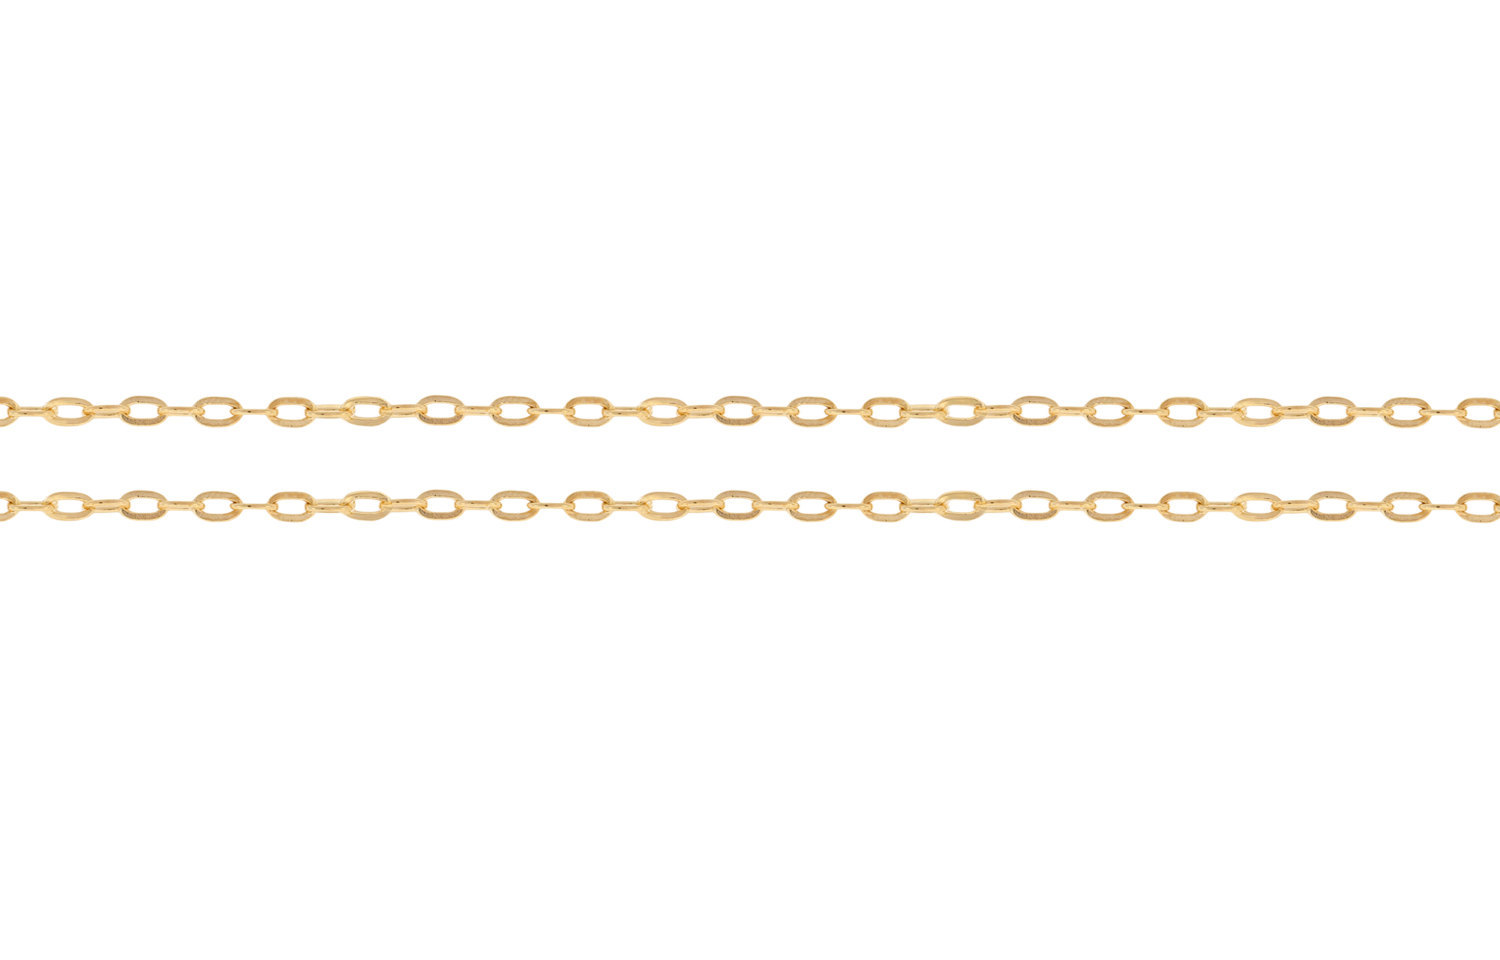 Primary image for Chains, Drawn Flat Cable Chain, 14Kt Gold Filled, 1.5x1mm, Pkg Of 5ft (6839-5)/1